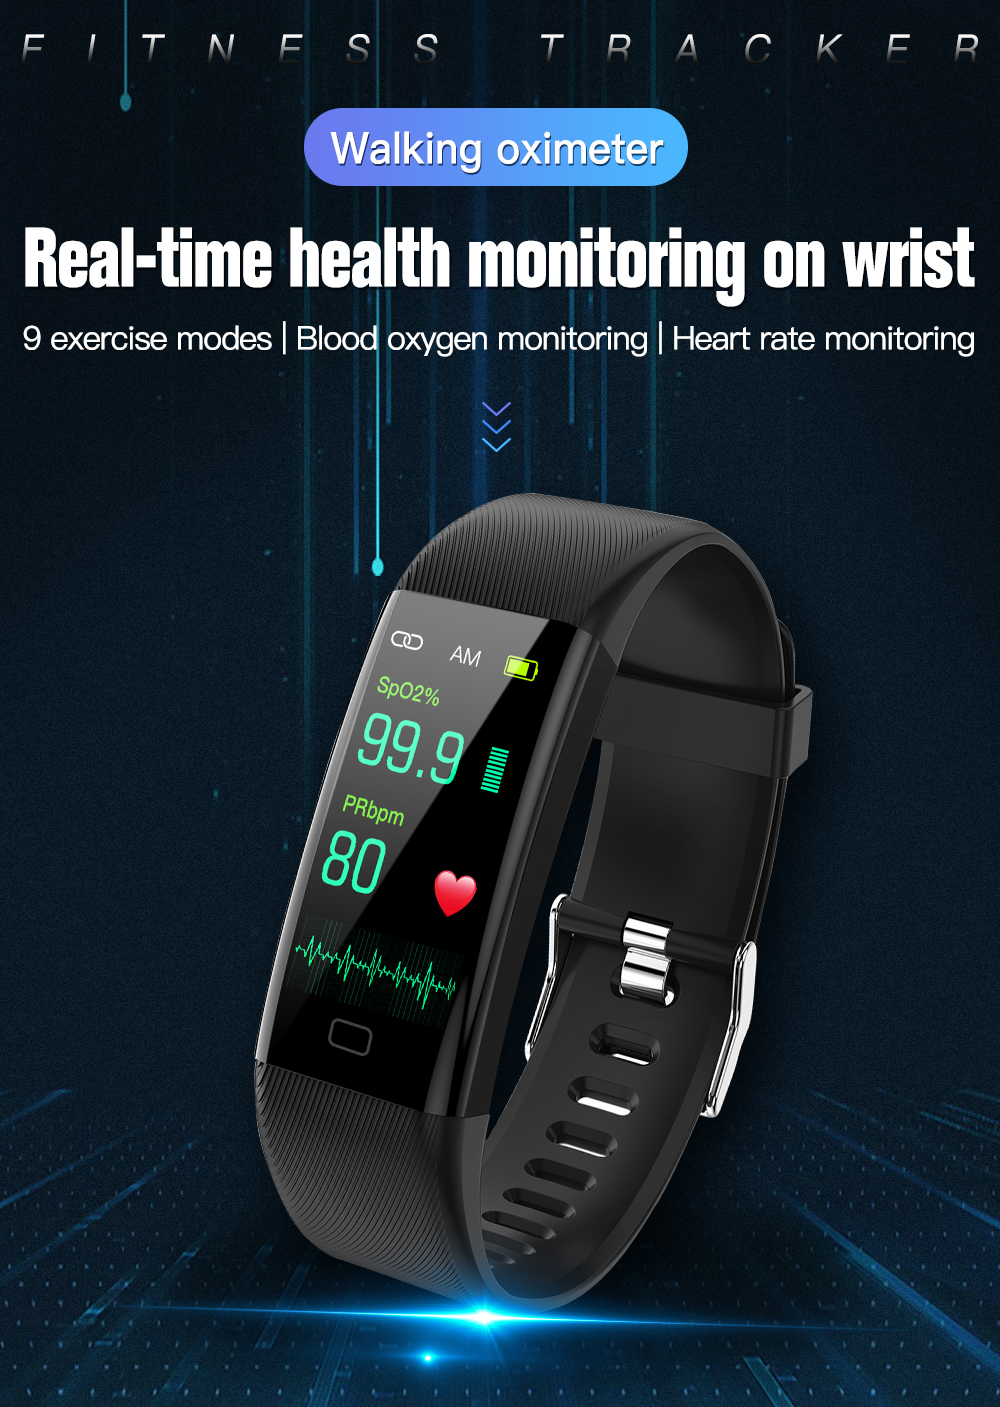 Smart watch Fitness Trackers Heart Rate Monitor Pulse Oximeter thermometer blood pressure smart bracelet for iPhone Xiaomi 2